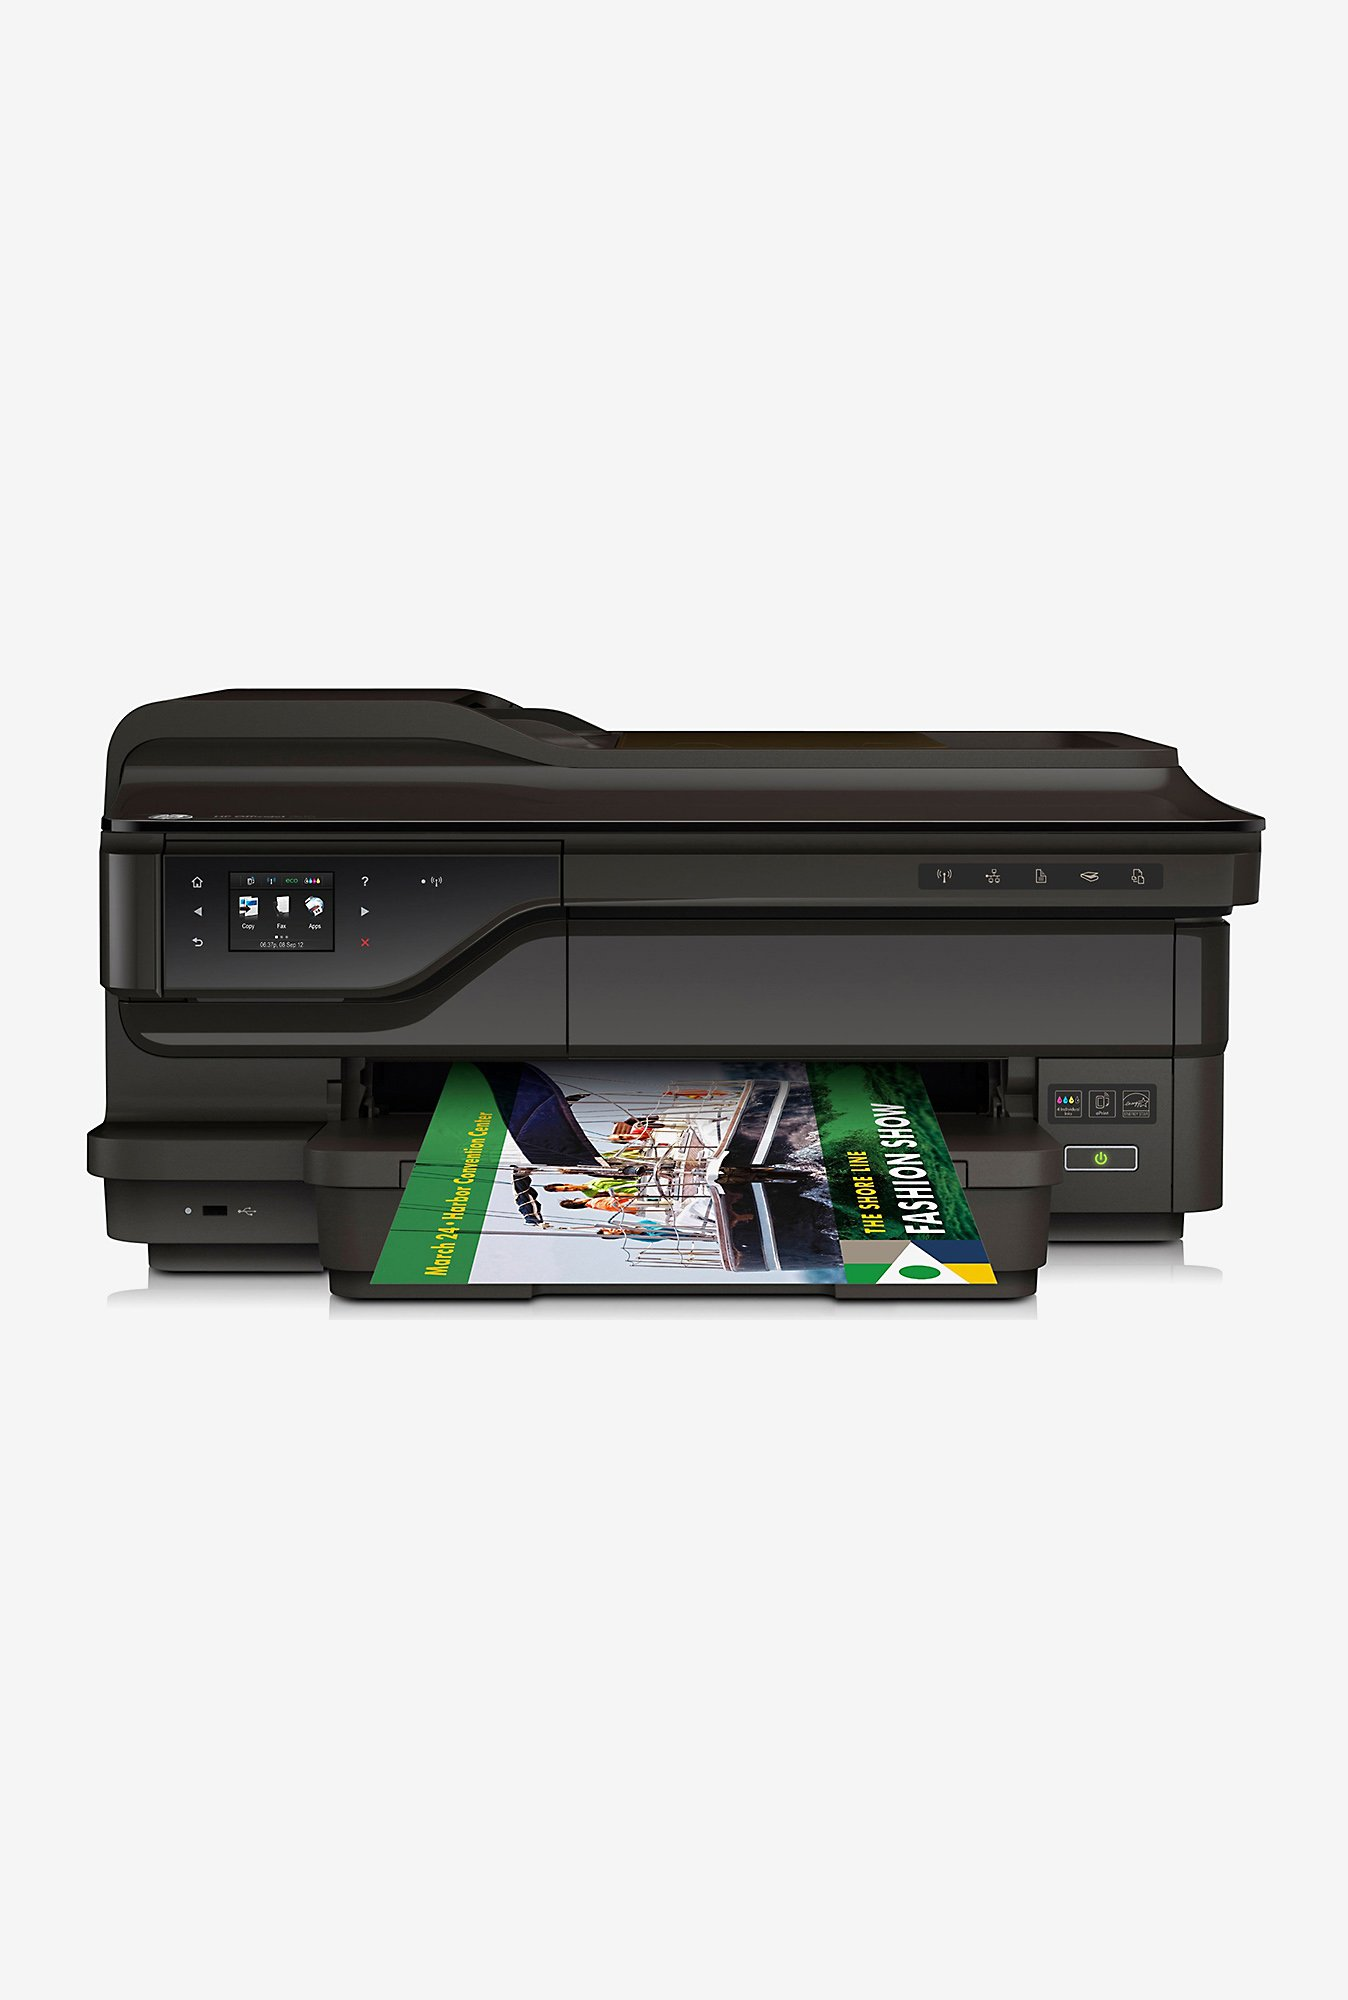 HP OfficeJet 7612 All In One Laser Printer (Black)